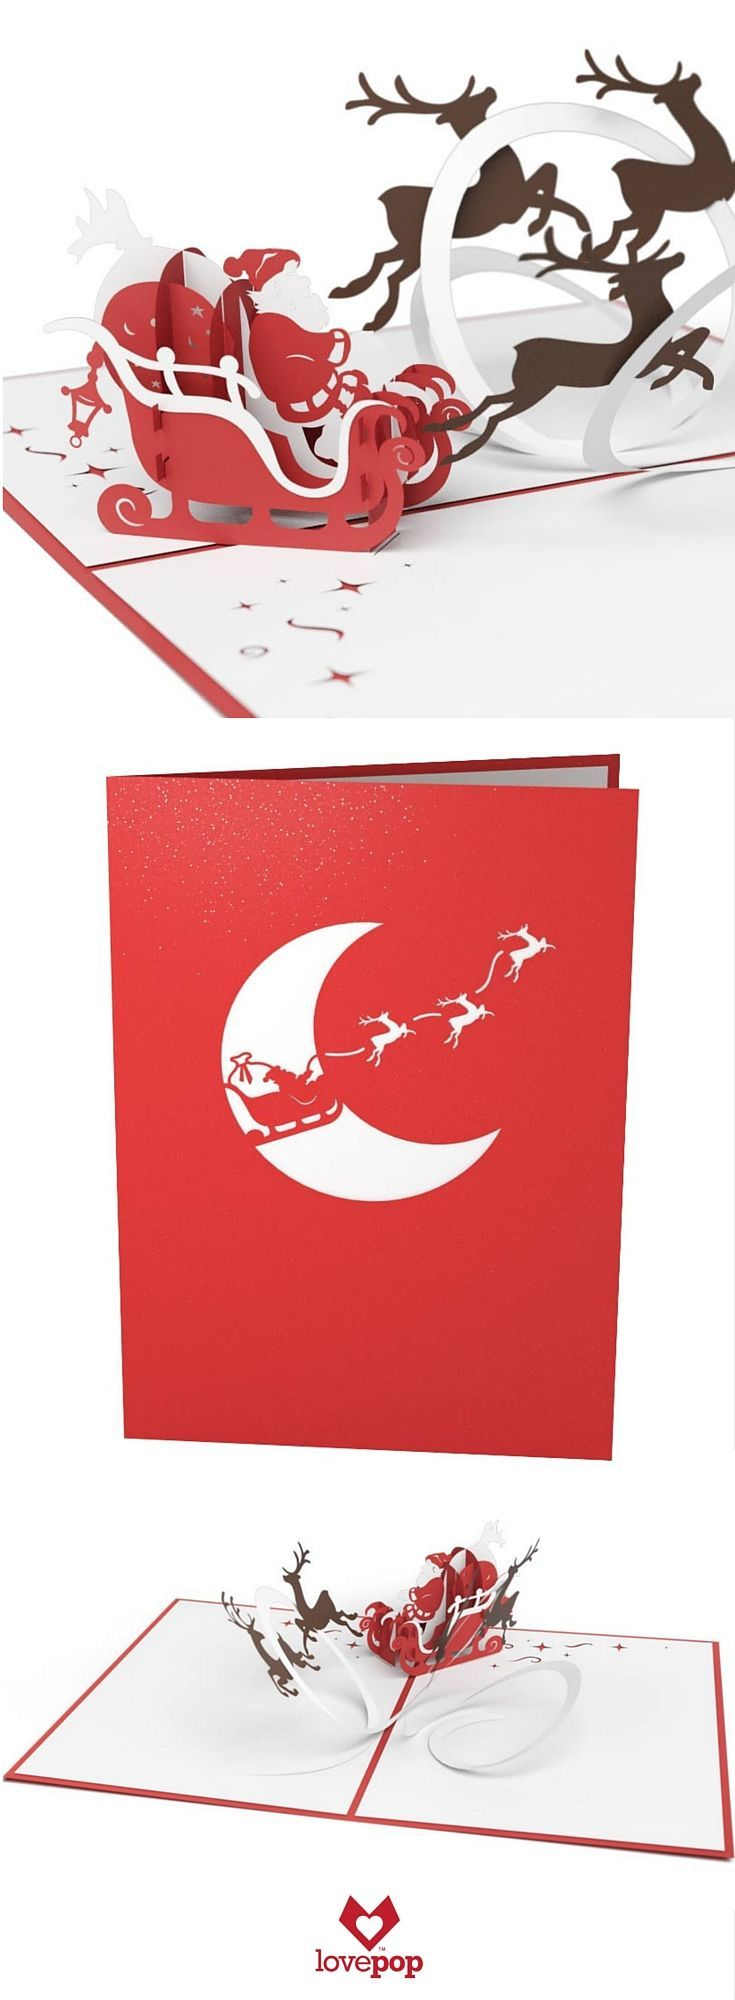 Photo Christmas Card 2220 Best Christmas Cards Images On Pinterest